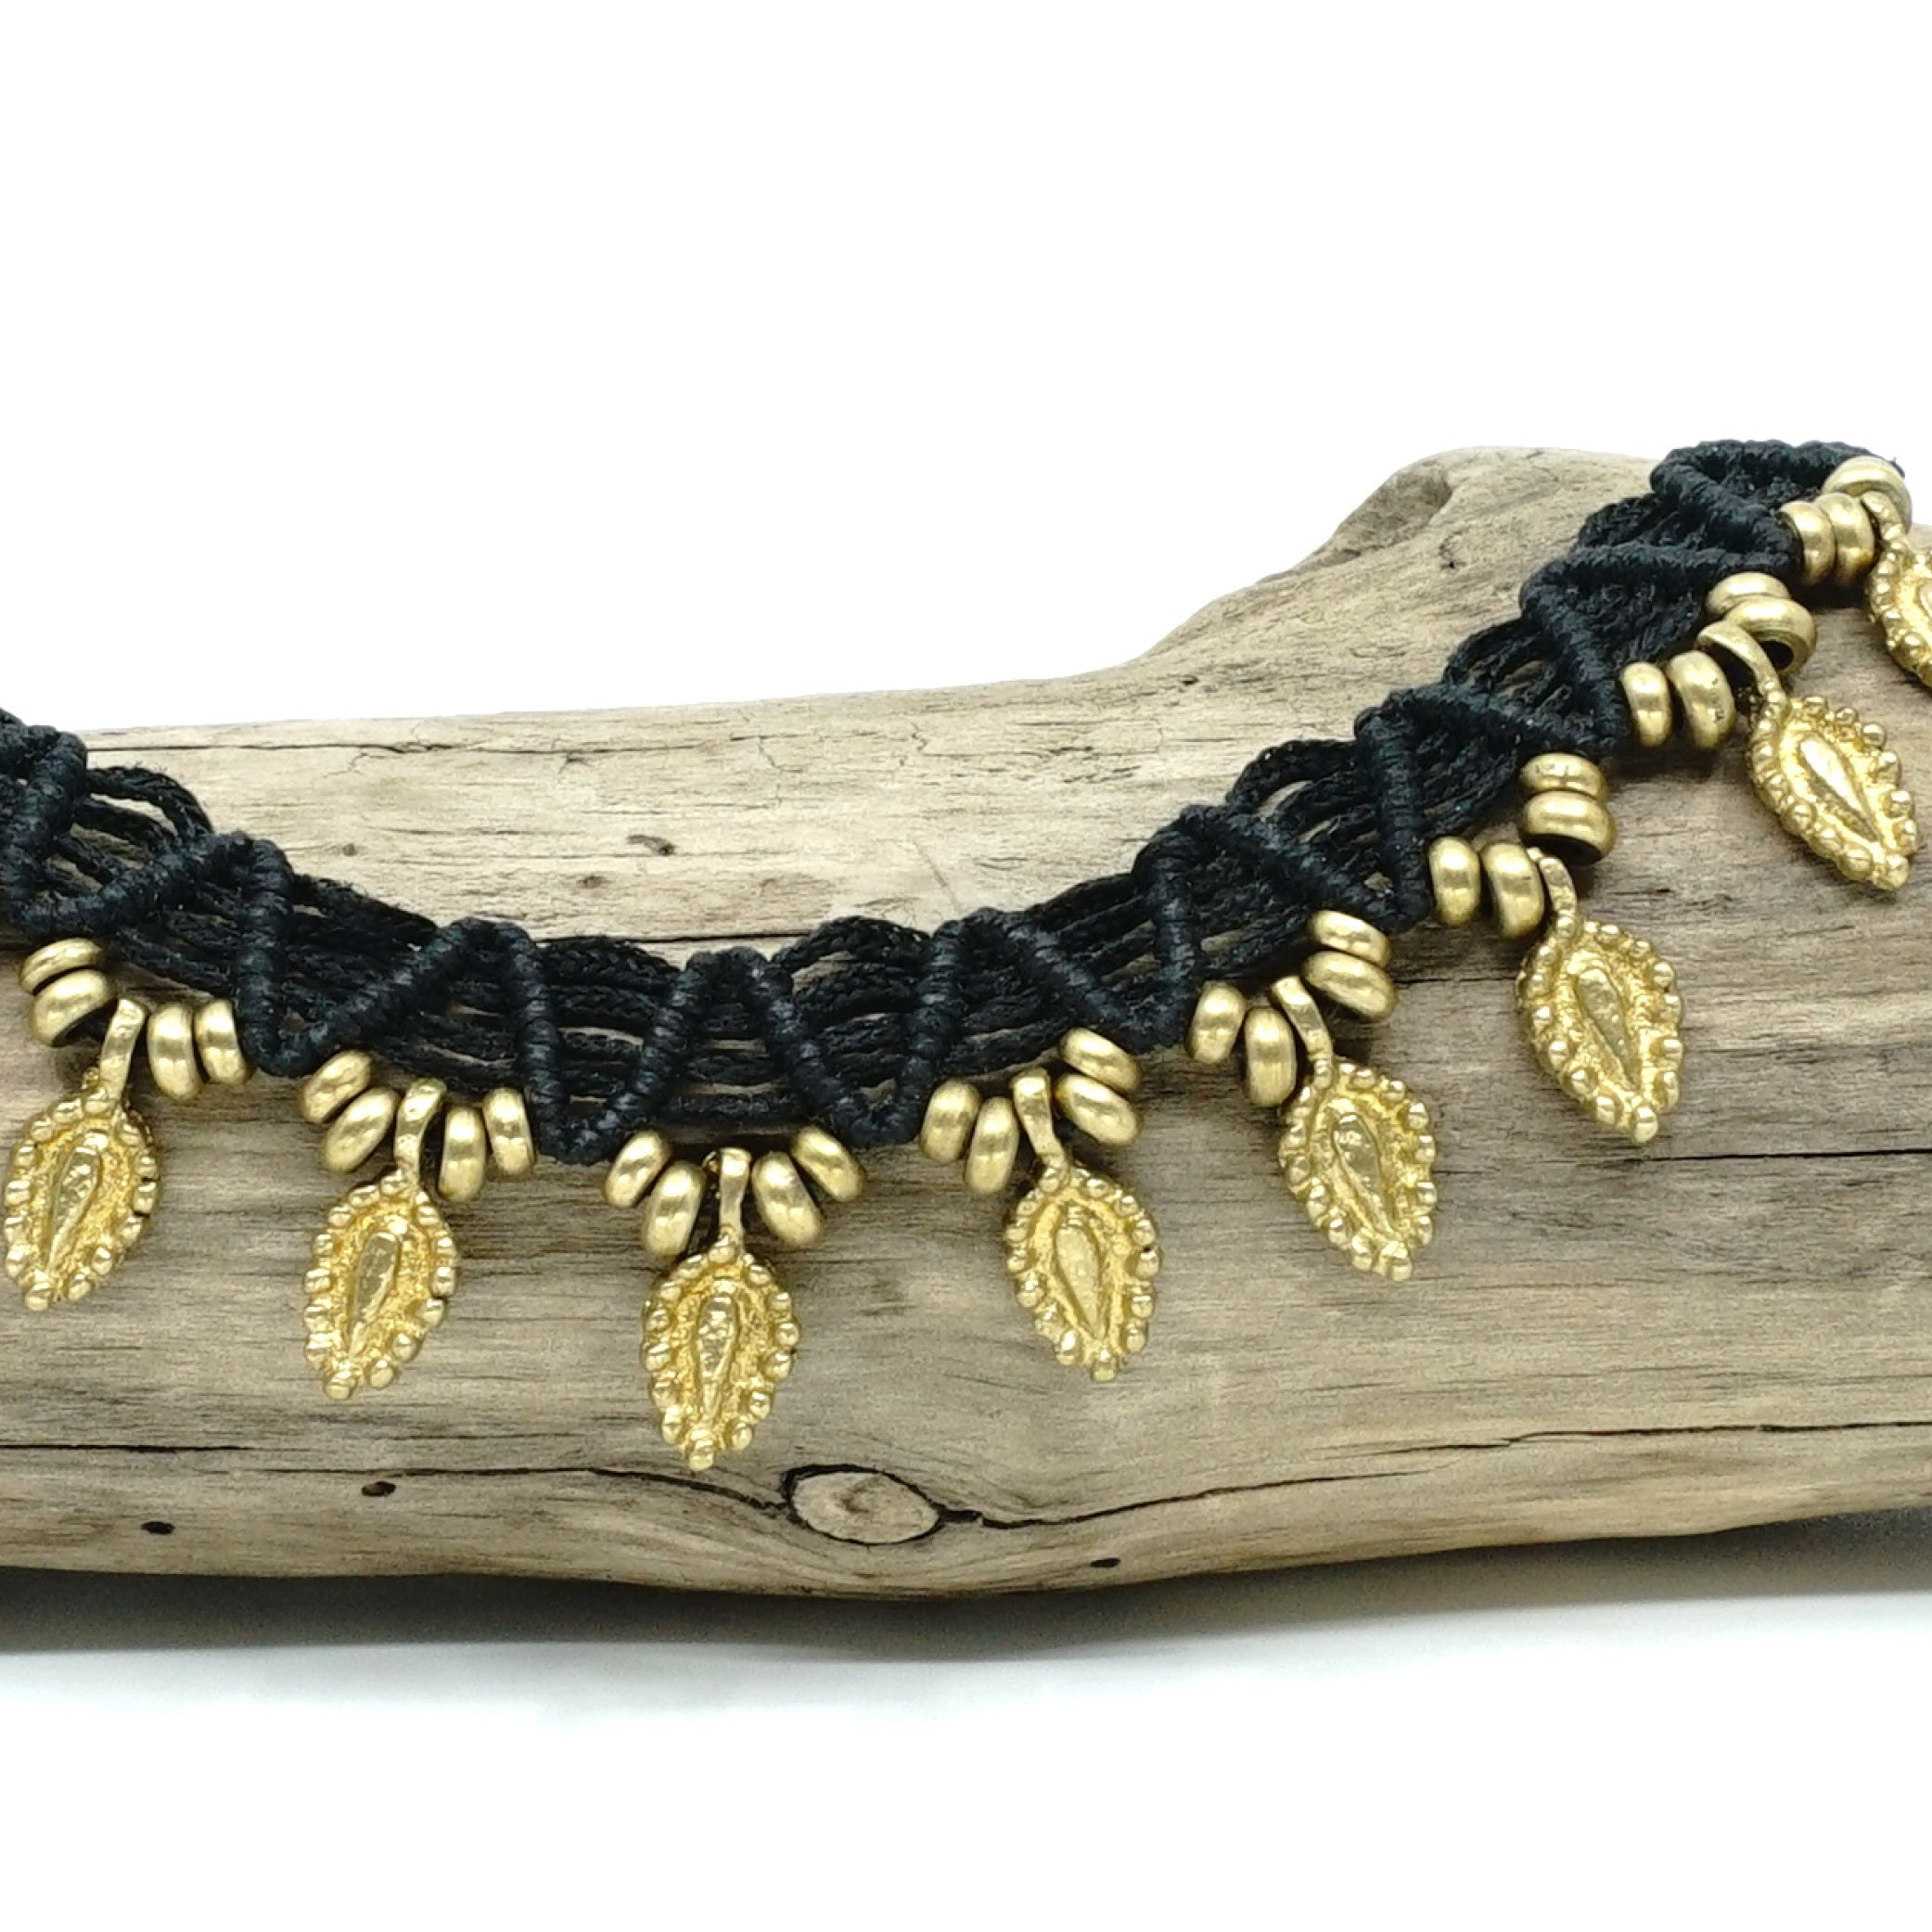 The Caviar Featherdrop Anklet